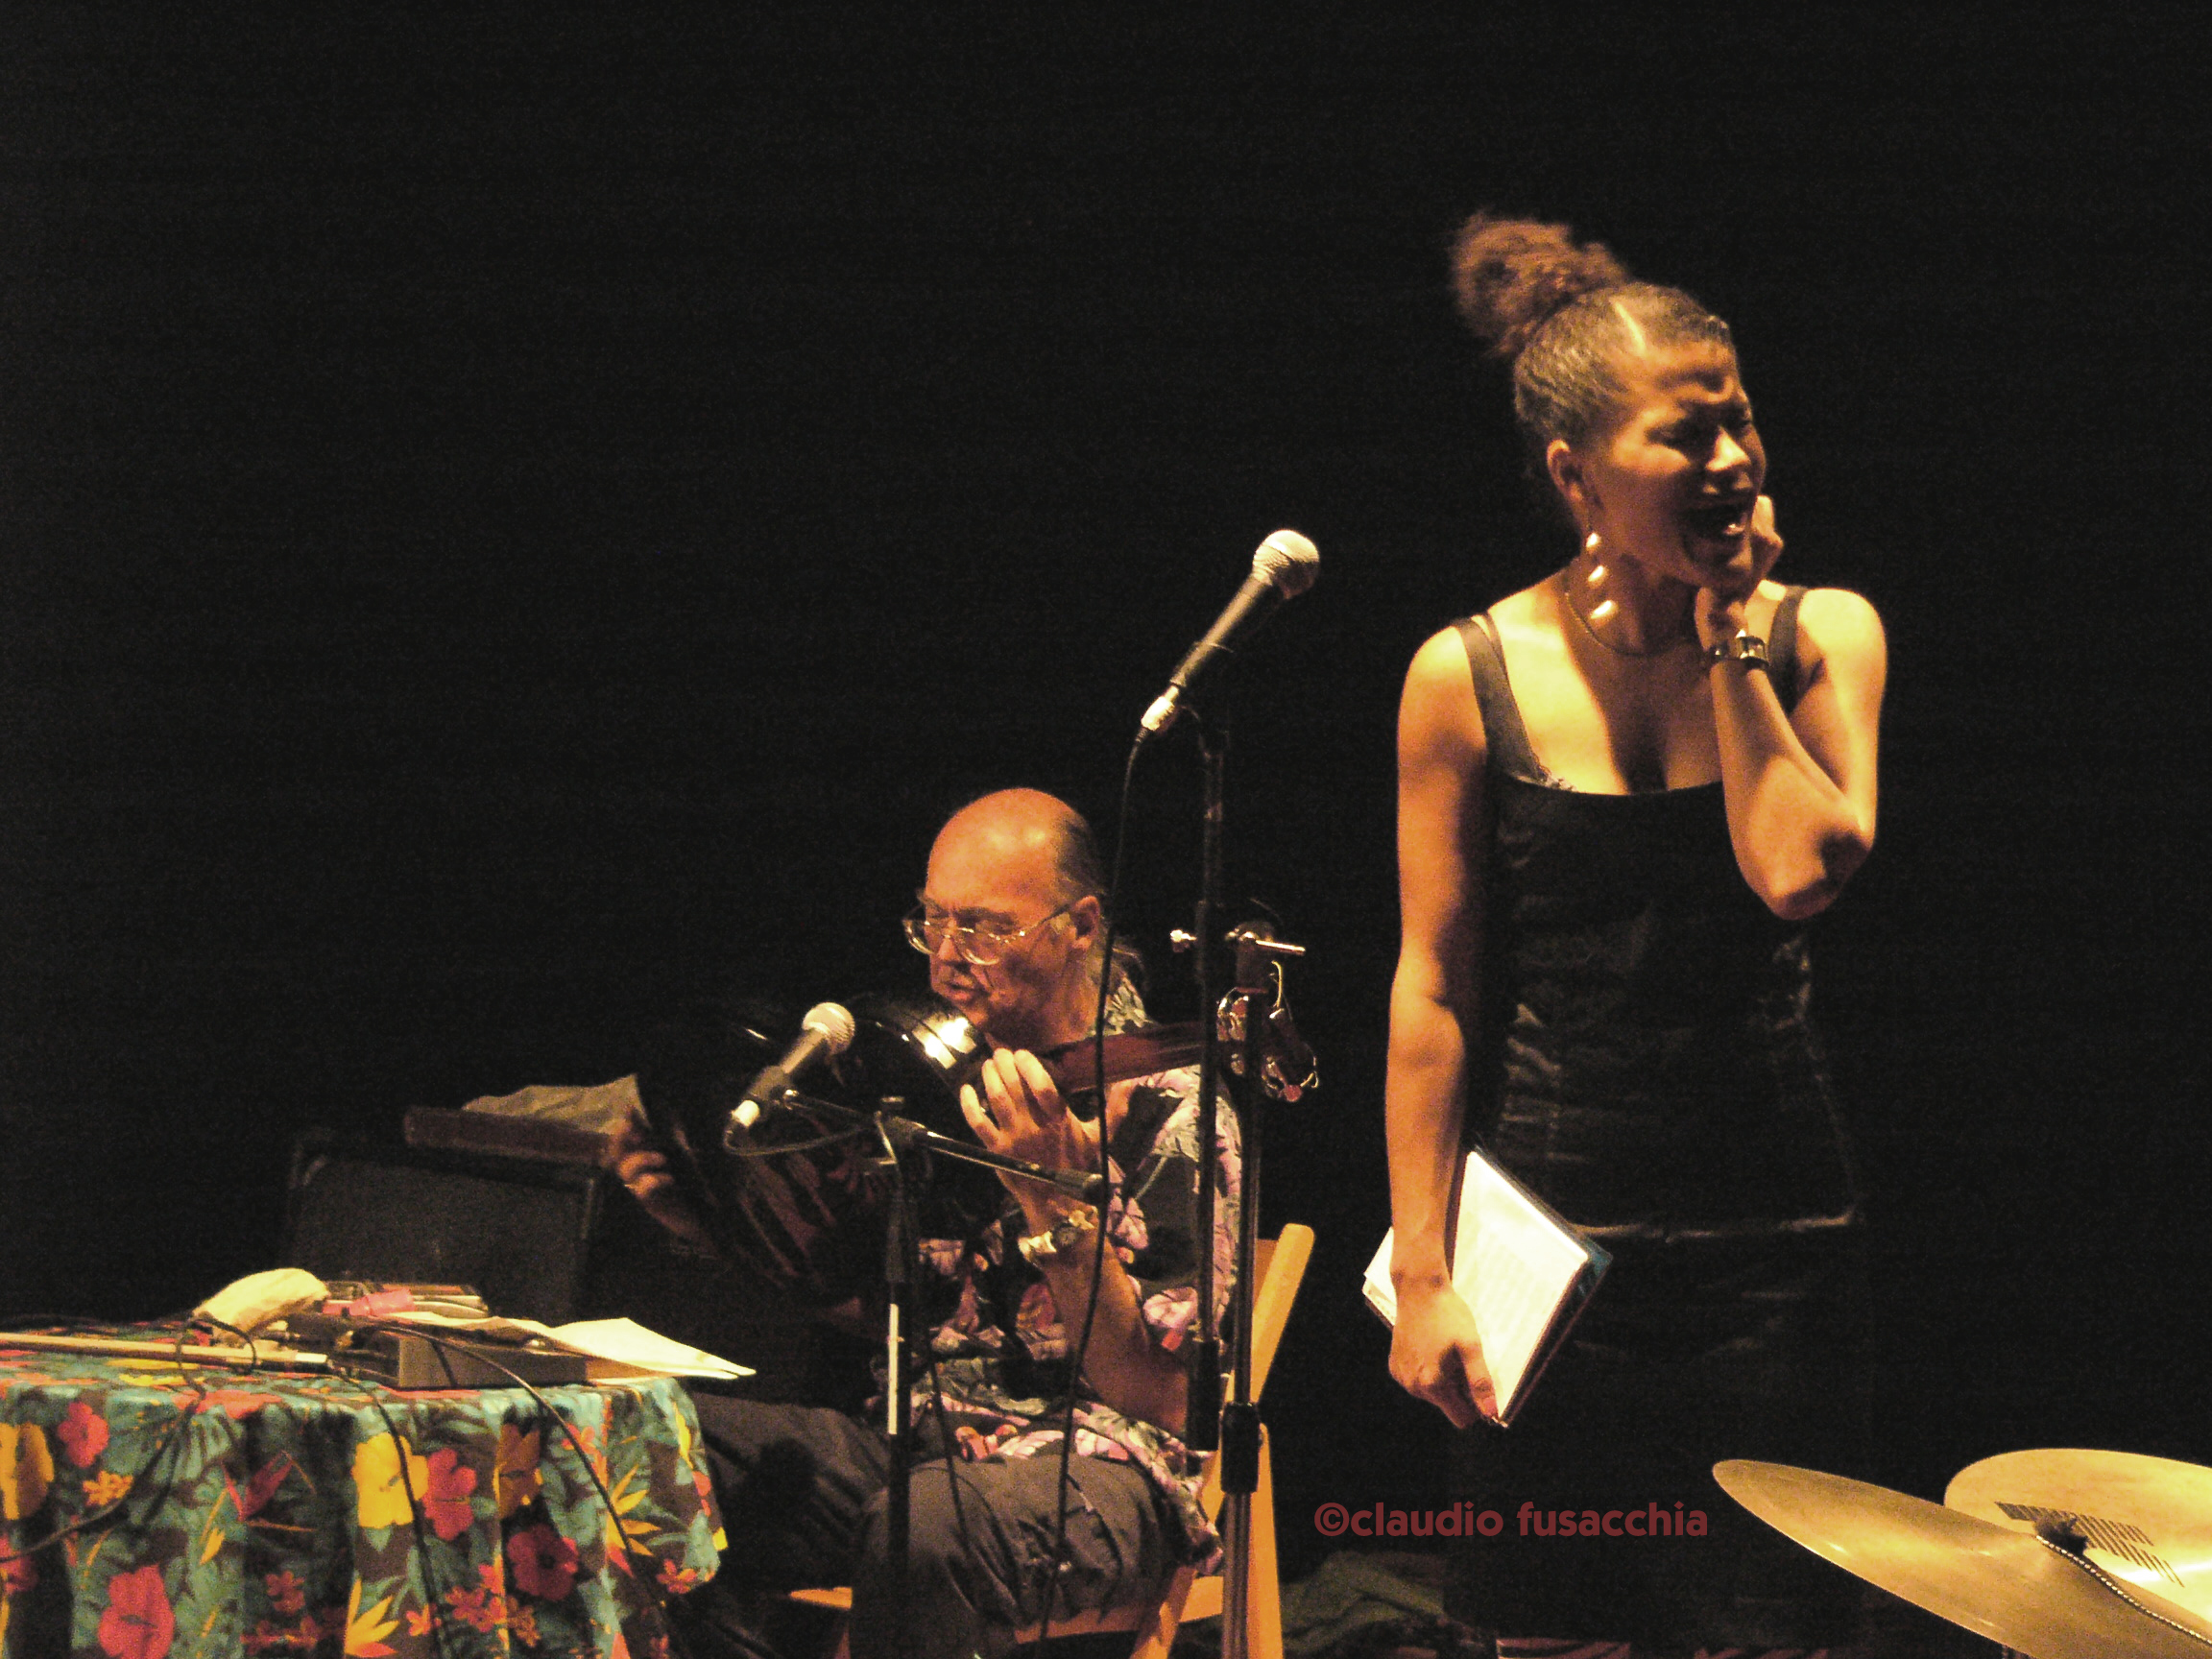 Concert at Il Cantiere, Roma (Mike Cooper & Leila Adu)